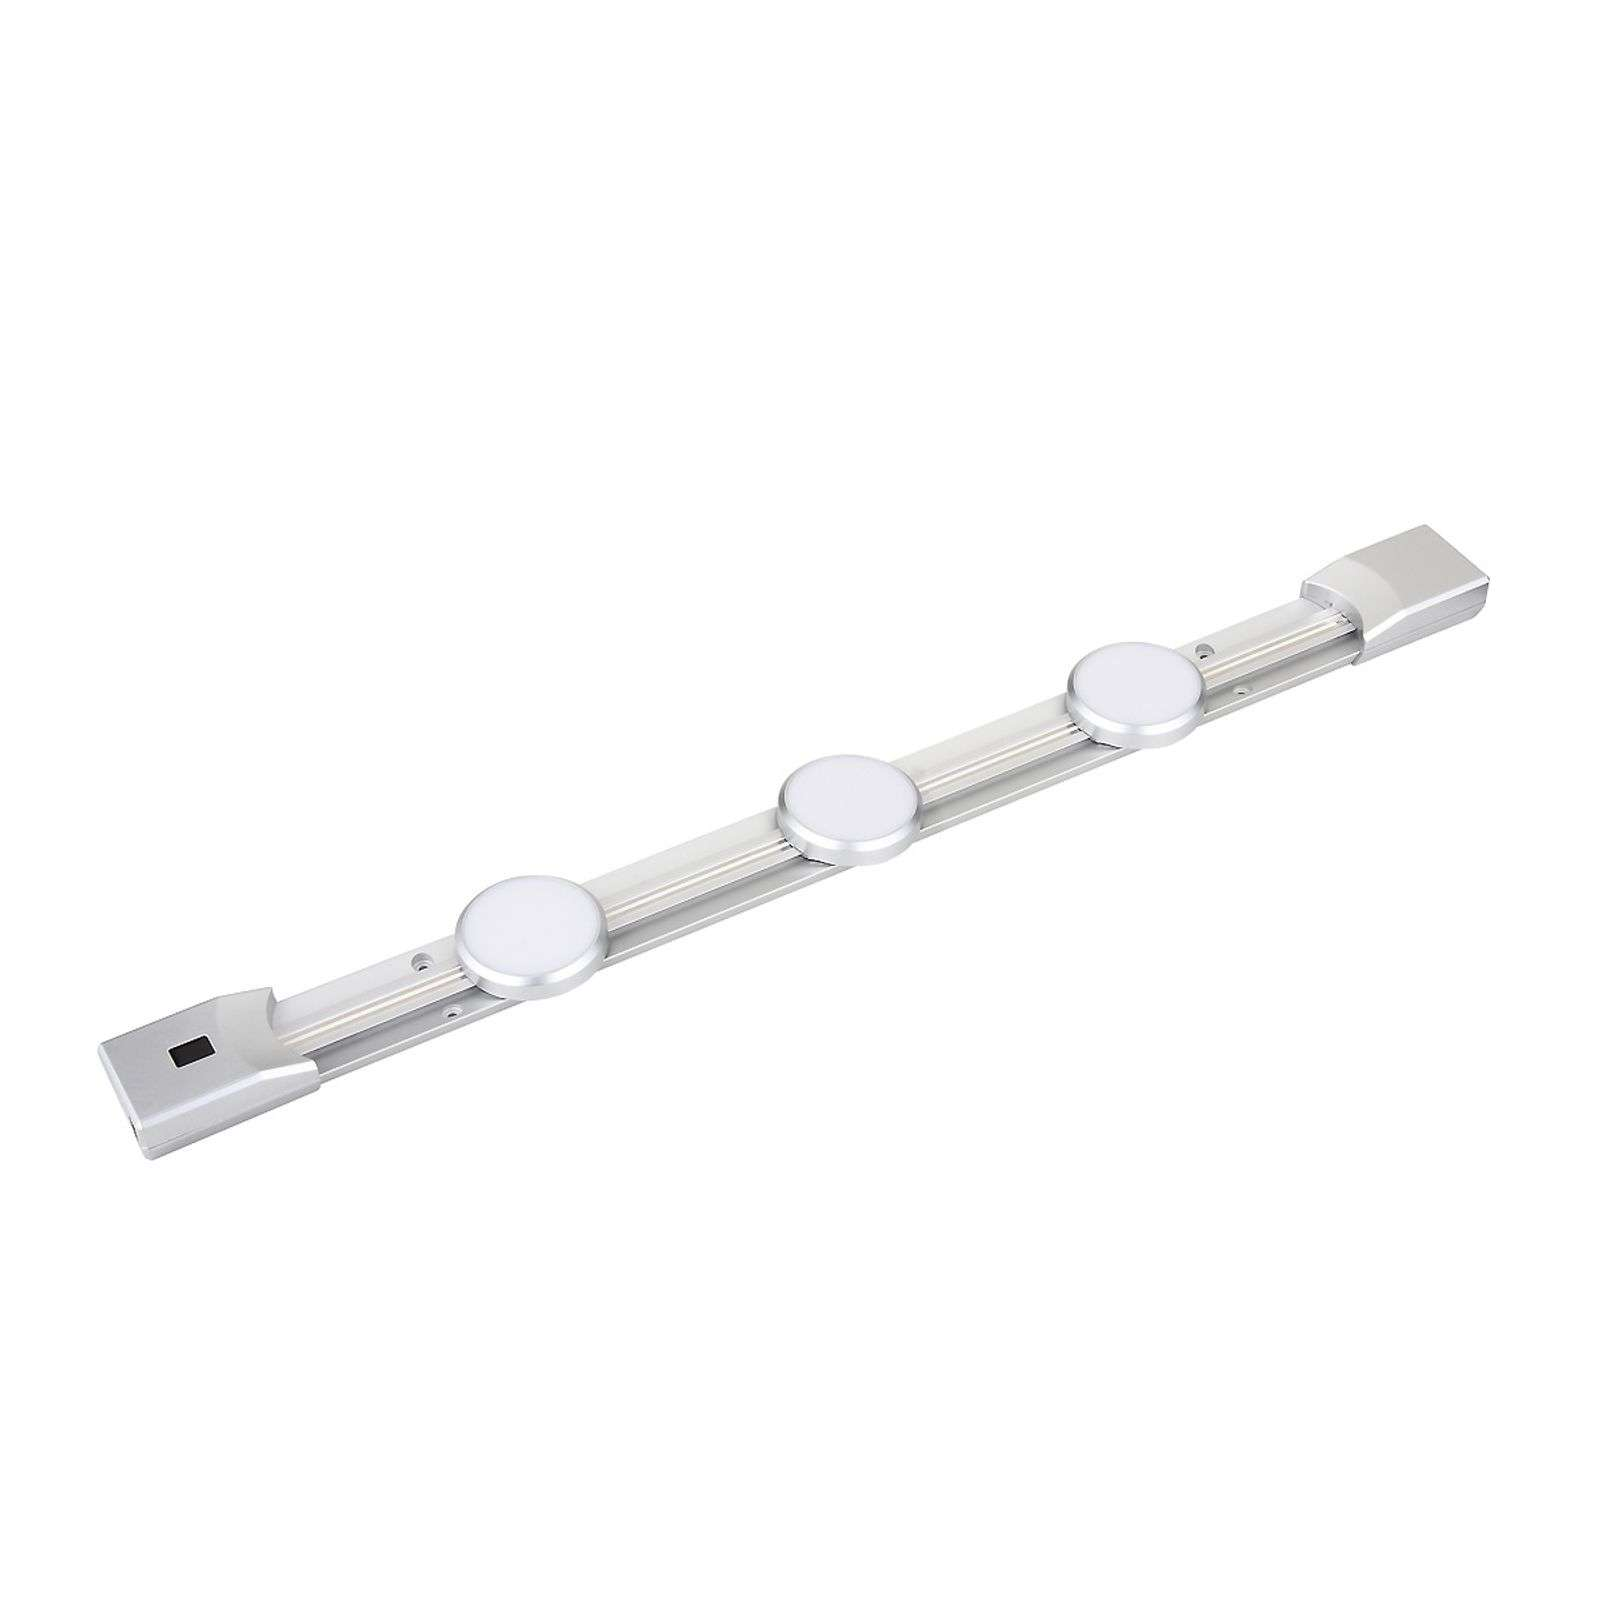 Applique LED 924 moderne à 3 lampes